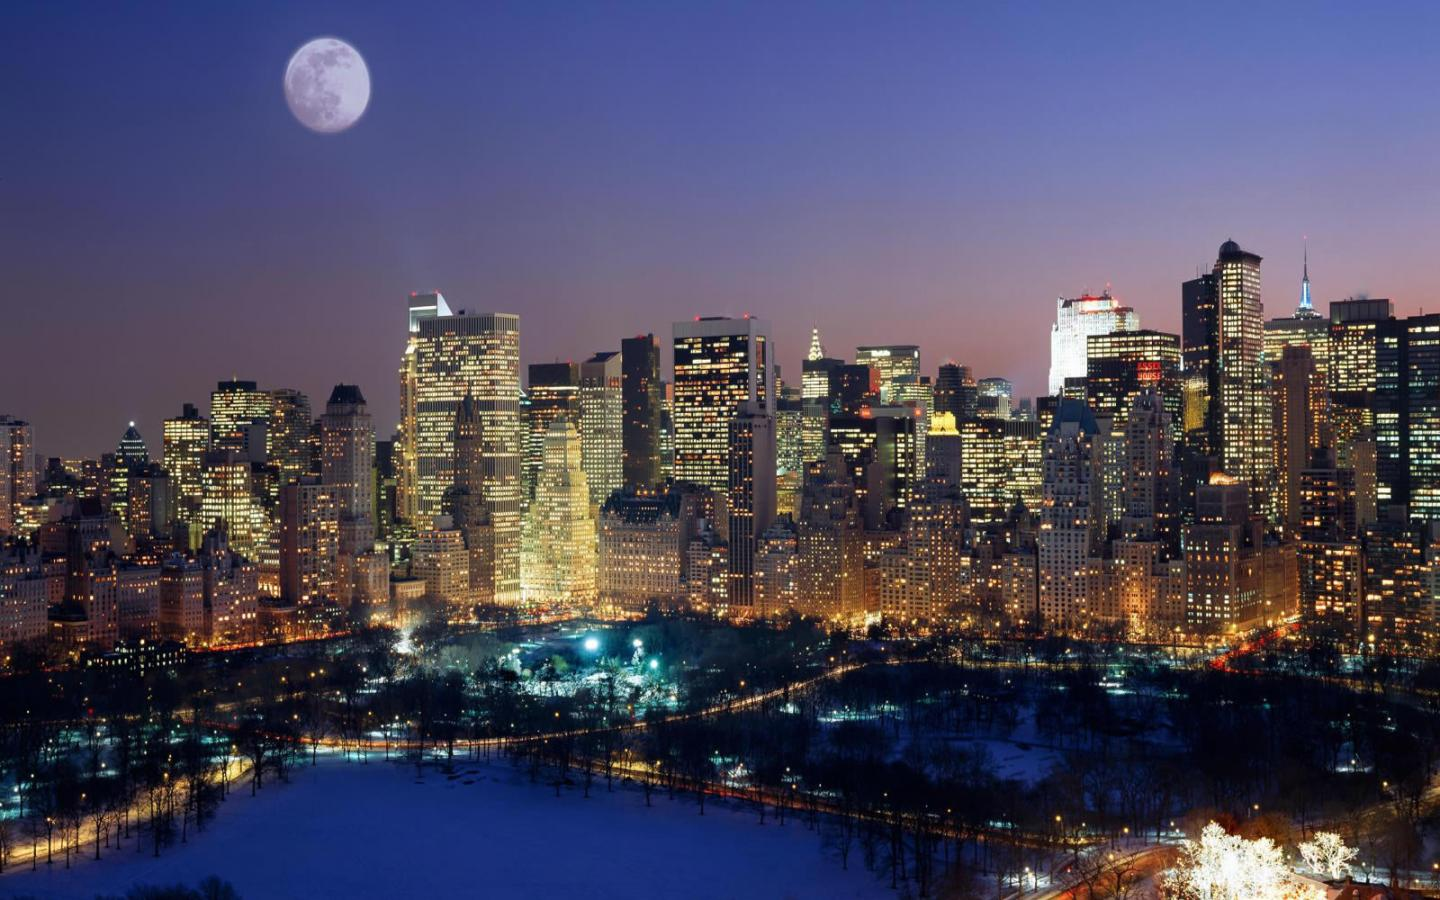 New York City Christmas Time Wallpaper Cities new york usa 1440x900